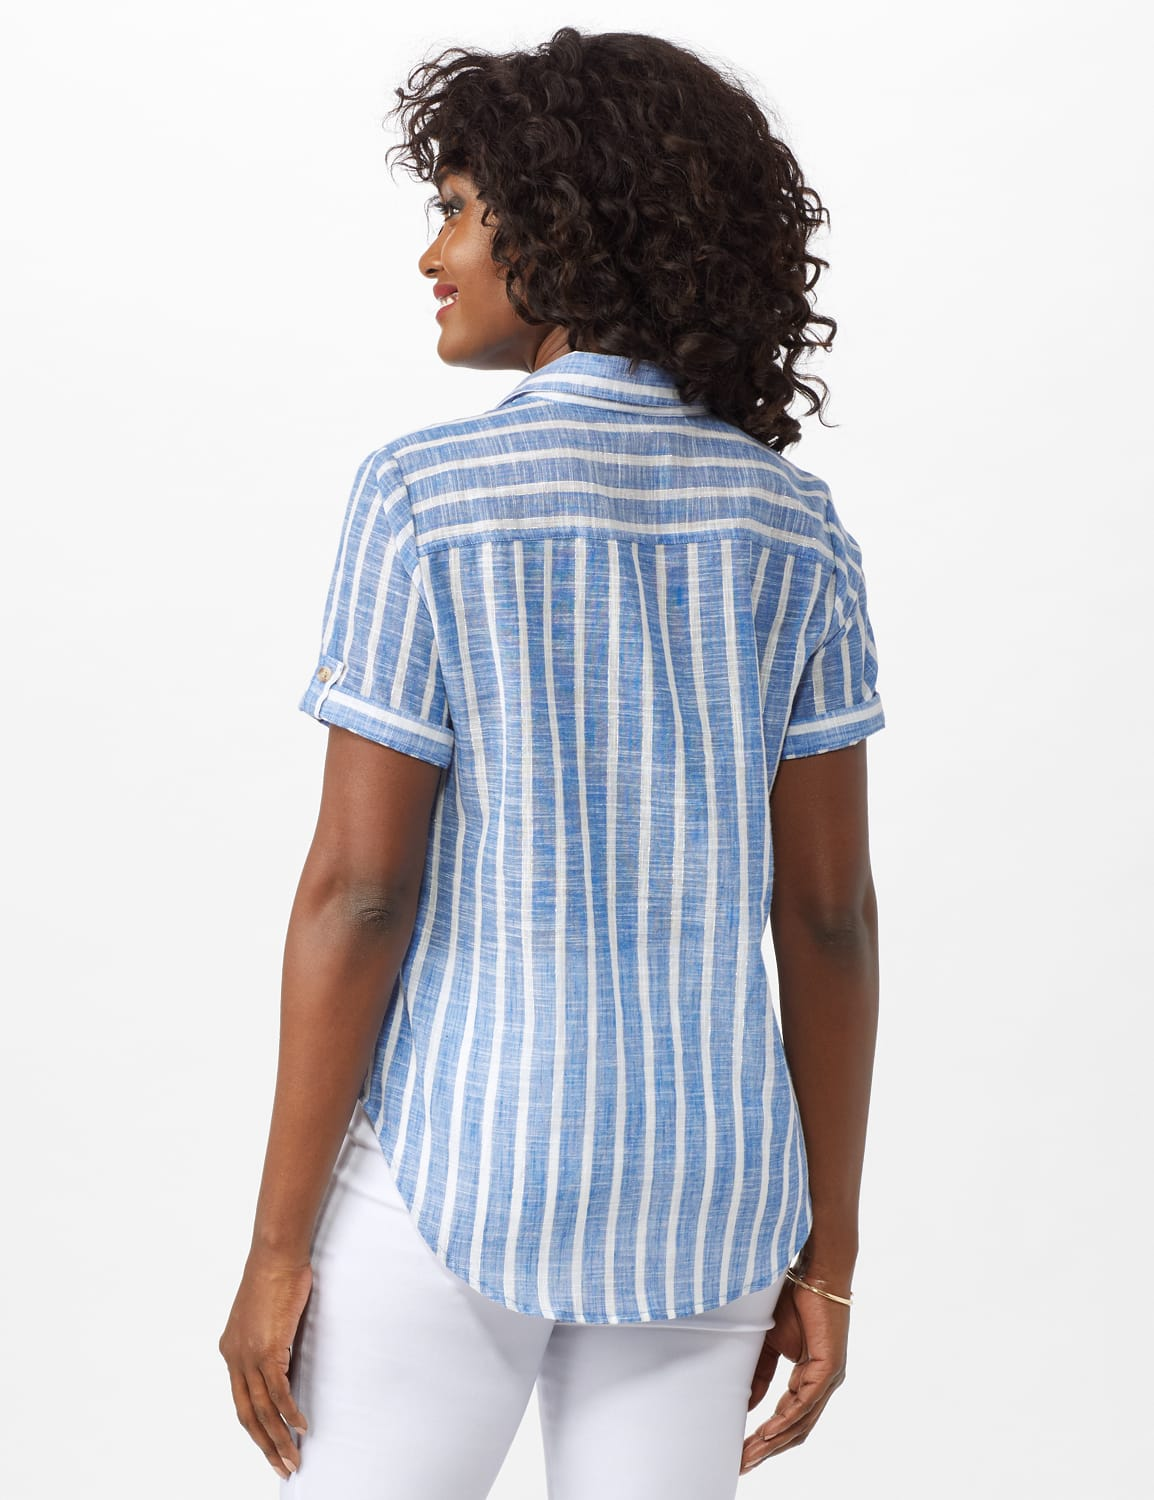 Dressbarn Lurex Stripe 1 Pocket Shirt - Misses - Blue - Back